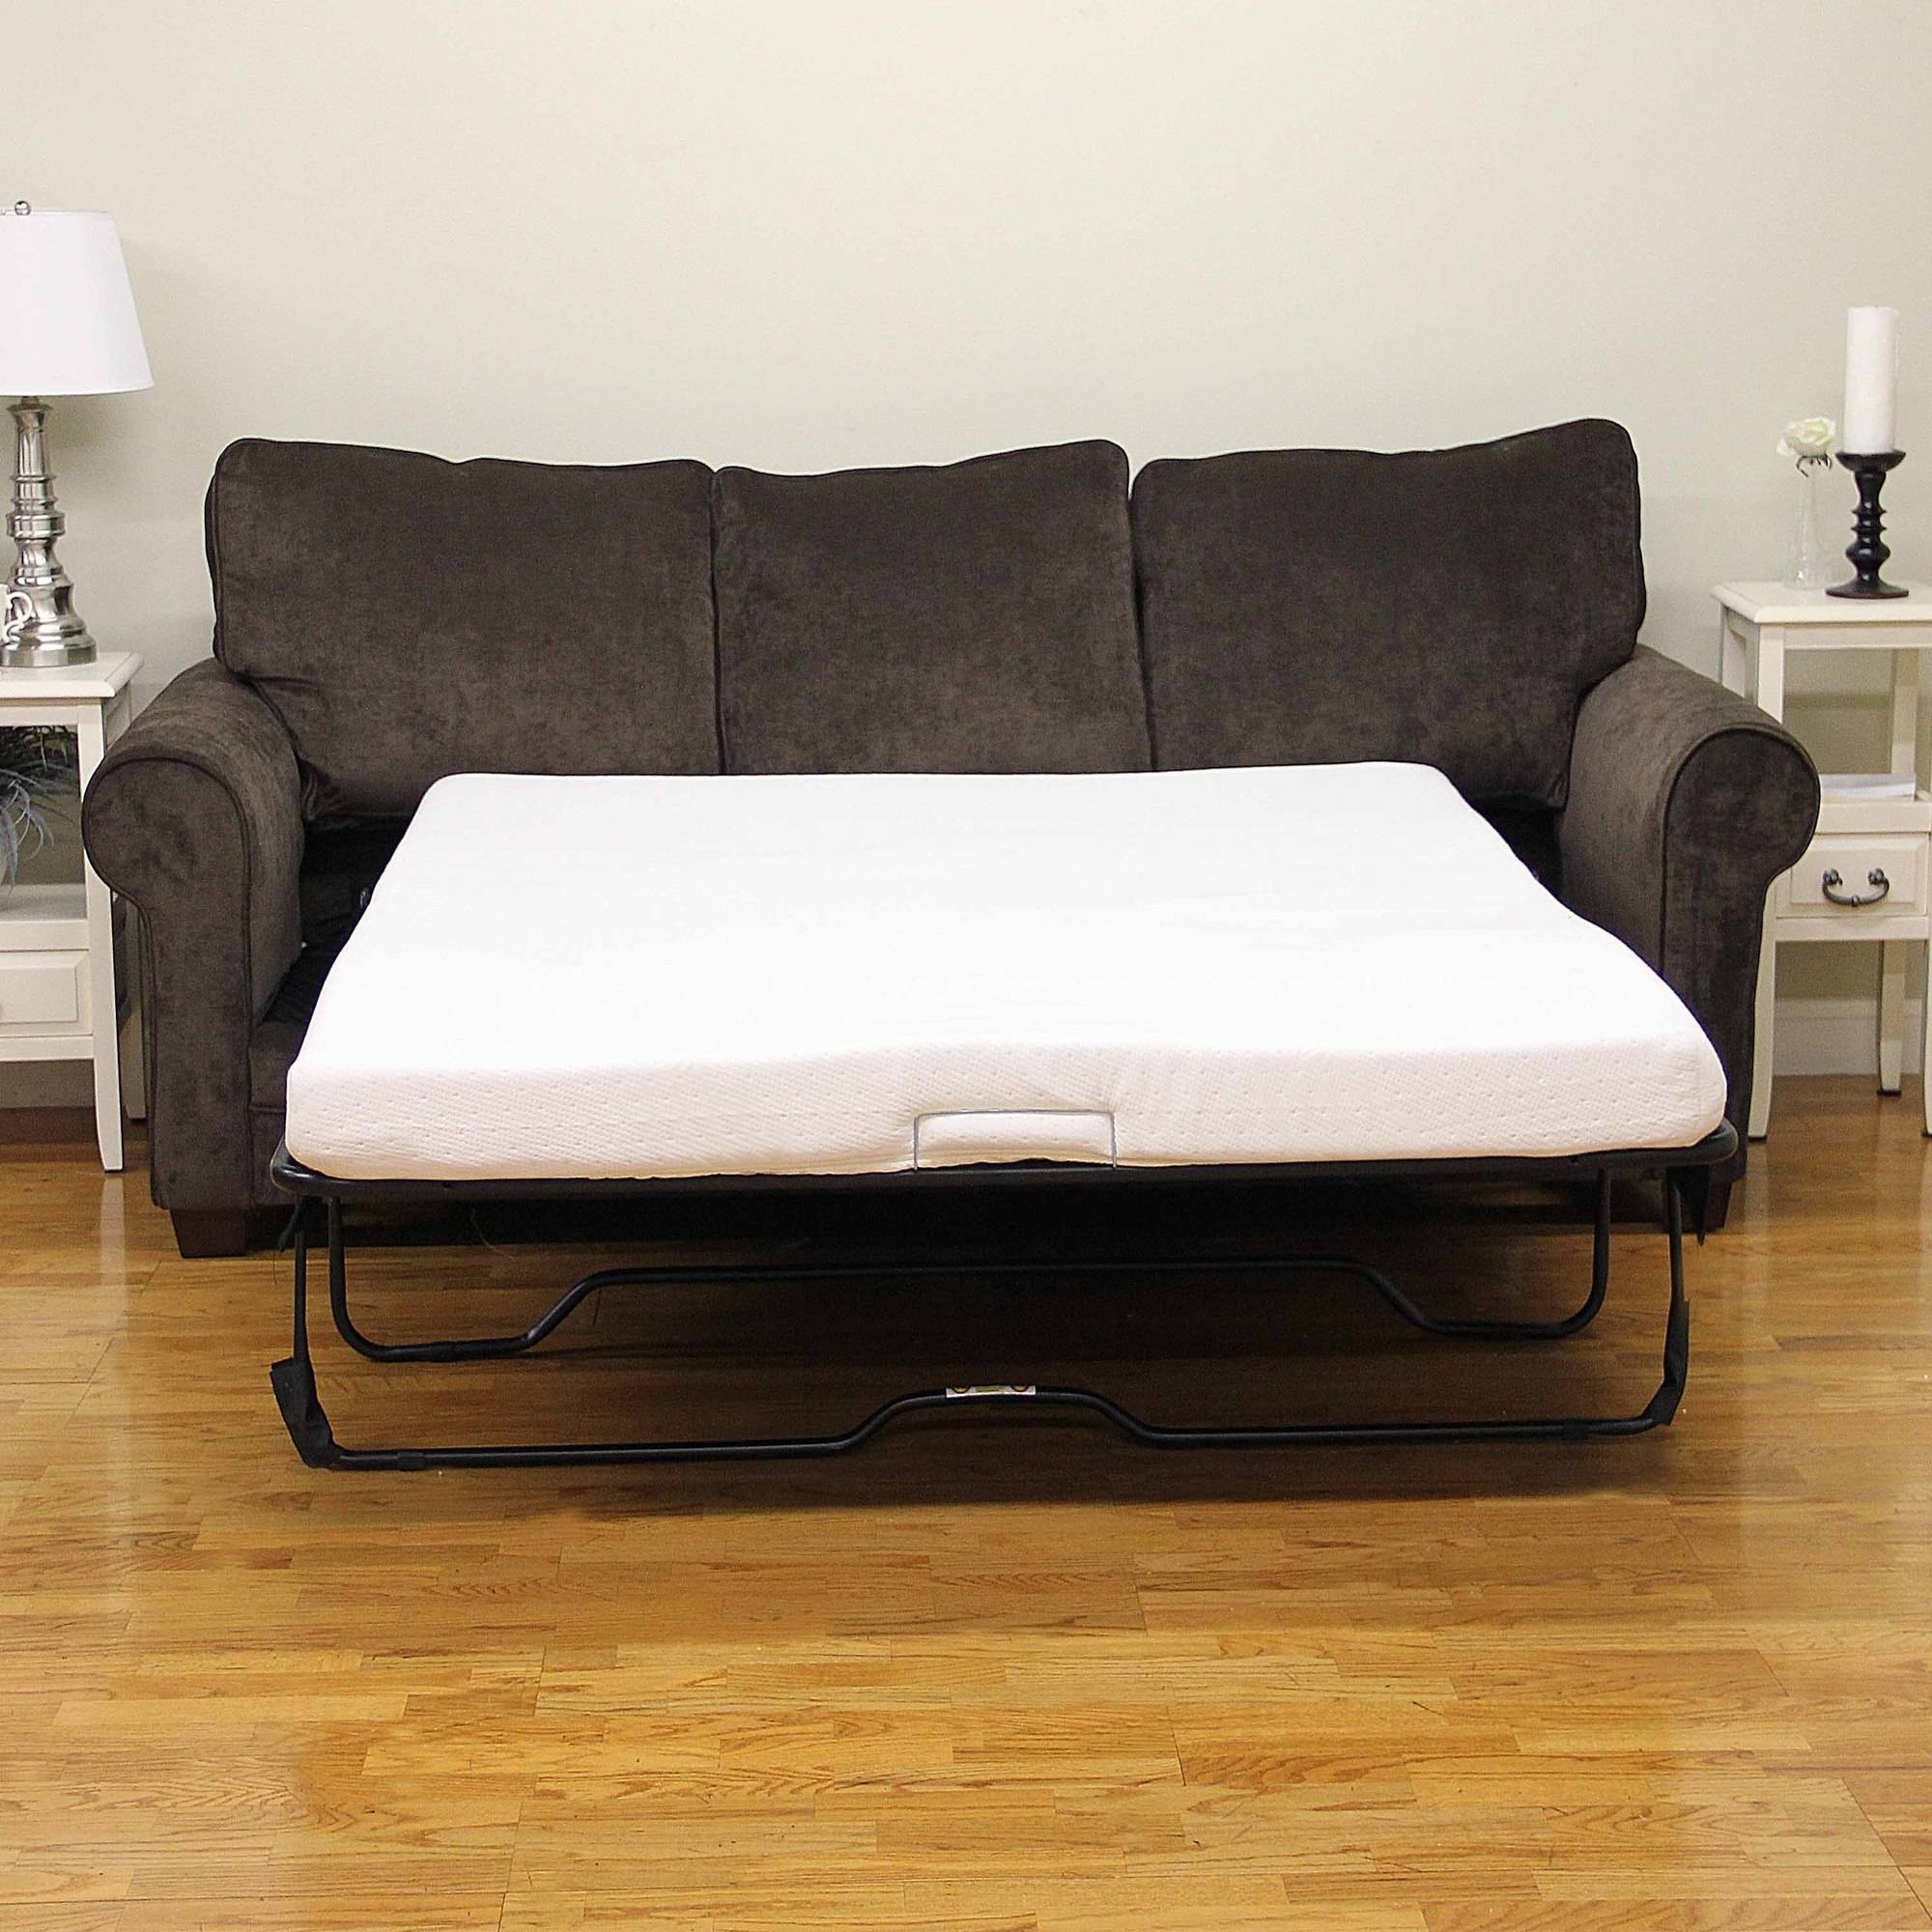 "Modern Sleep Memory Foam 4.5"" Sofa Bed Mattress, Multiple Sizes pertaining to Full Size Sofa Sleepers (Image 10 of 30)"